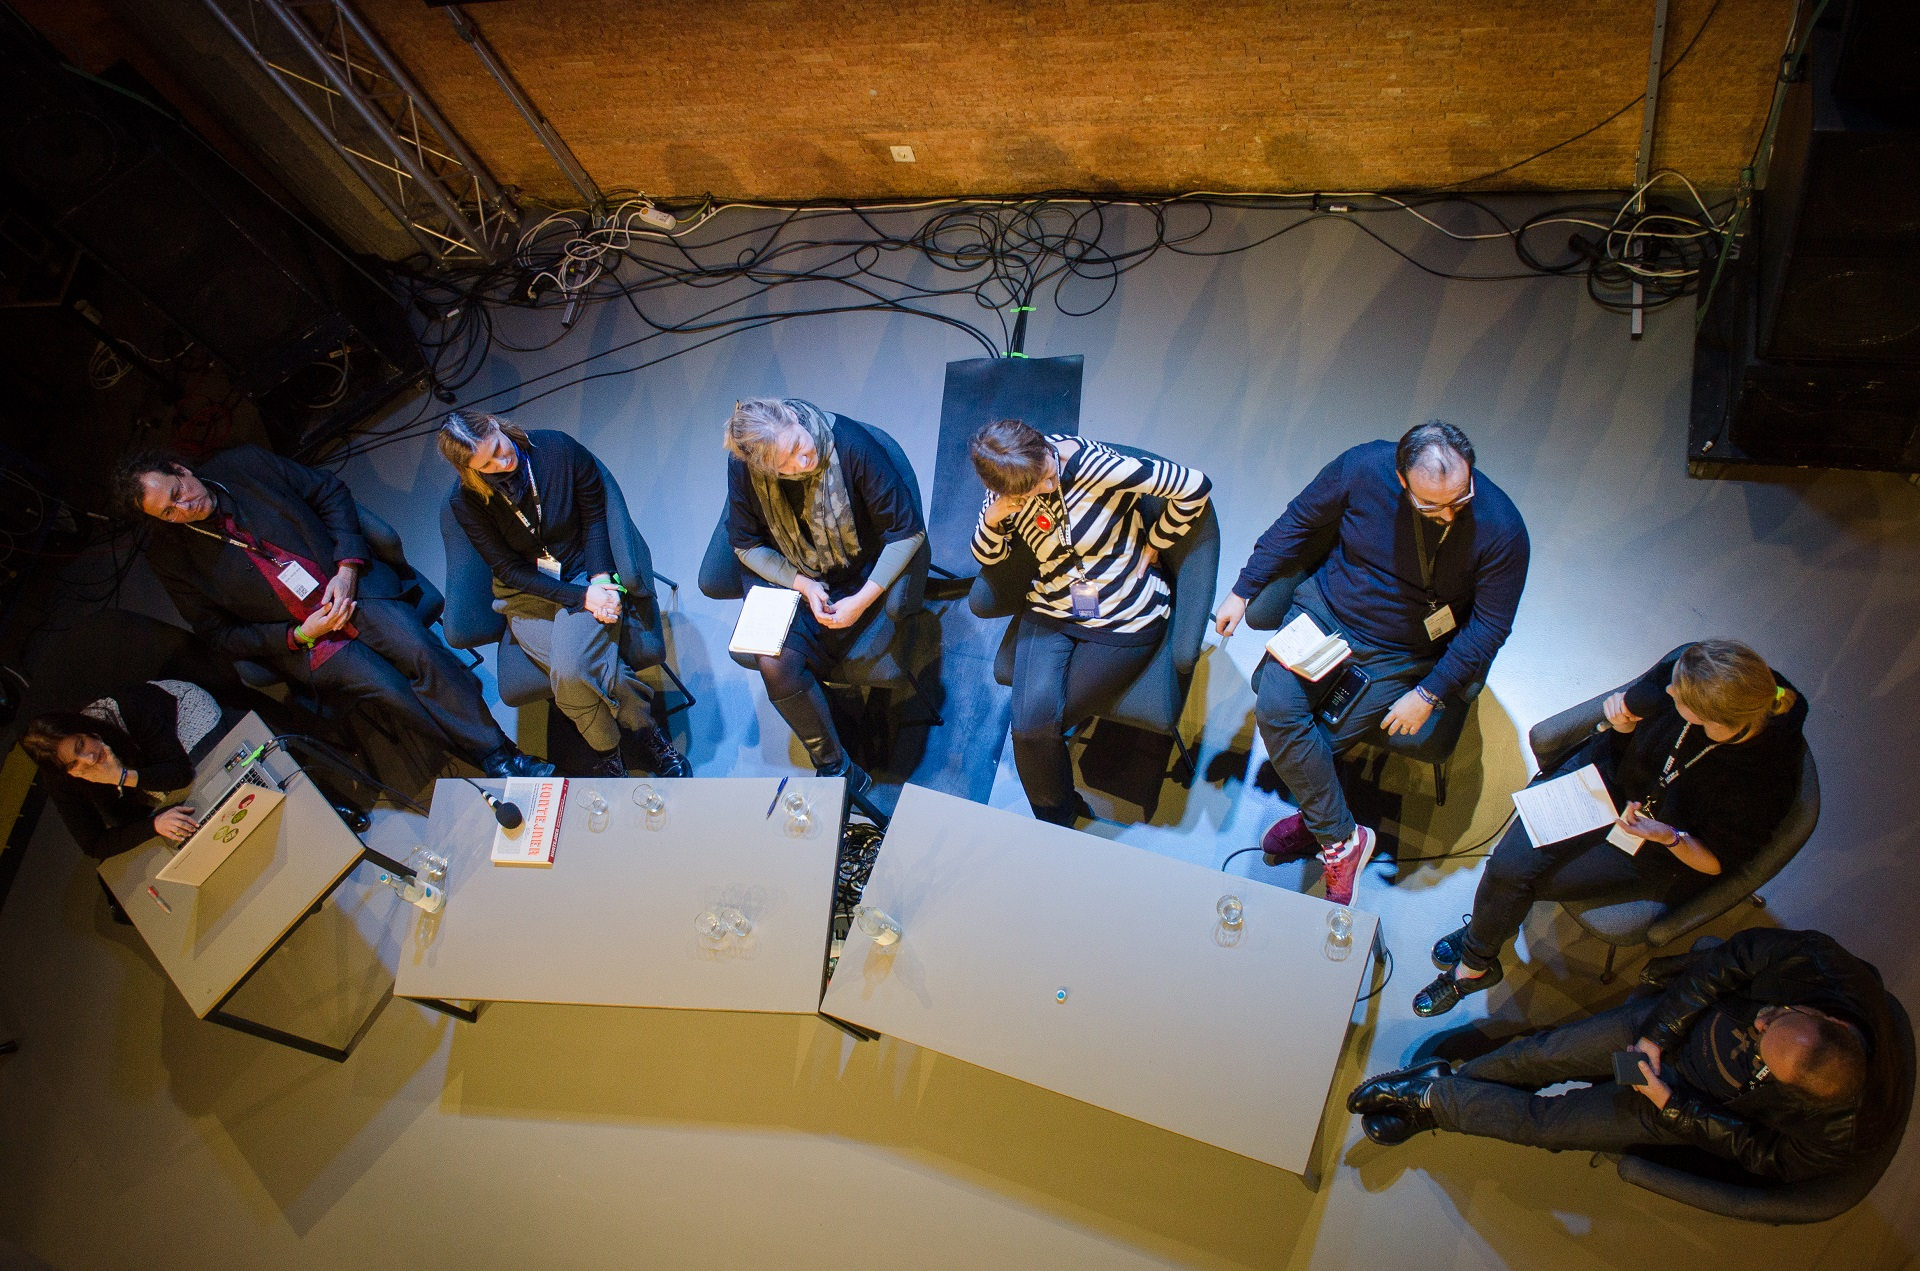 EMAP jury 2018 at transmediale_Berlin, photo: transmediale archive